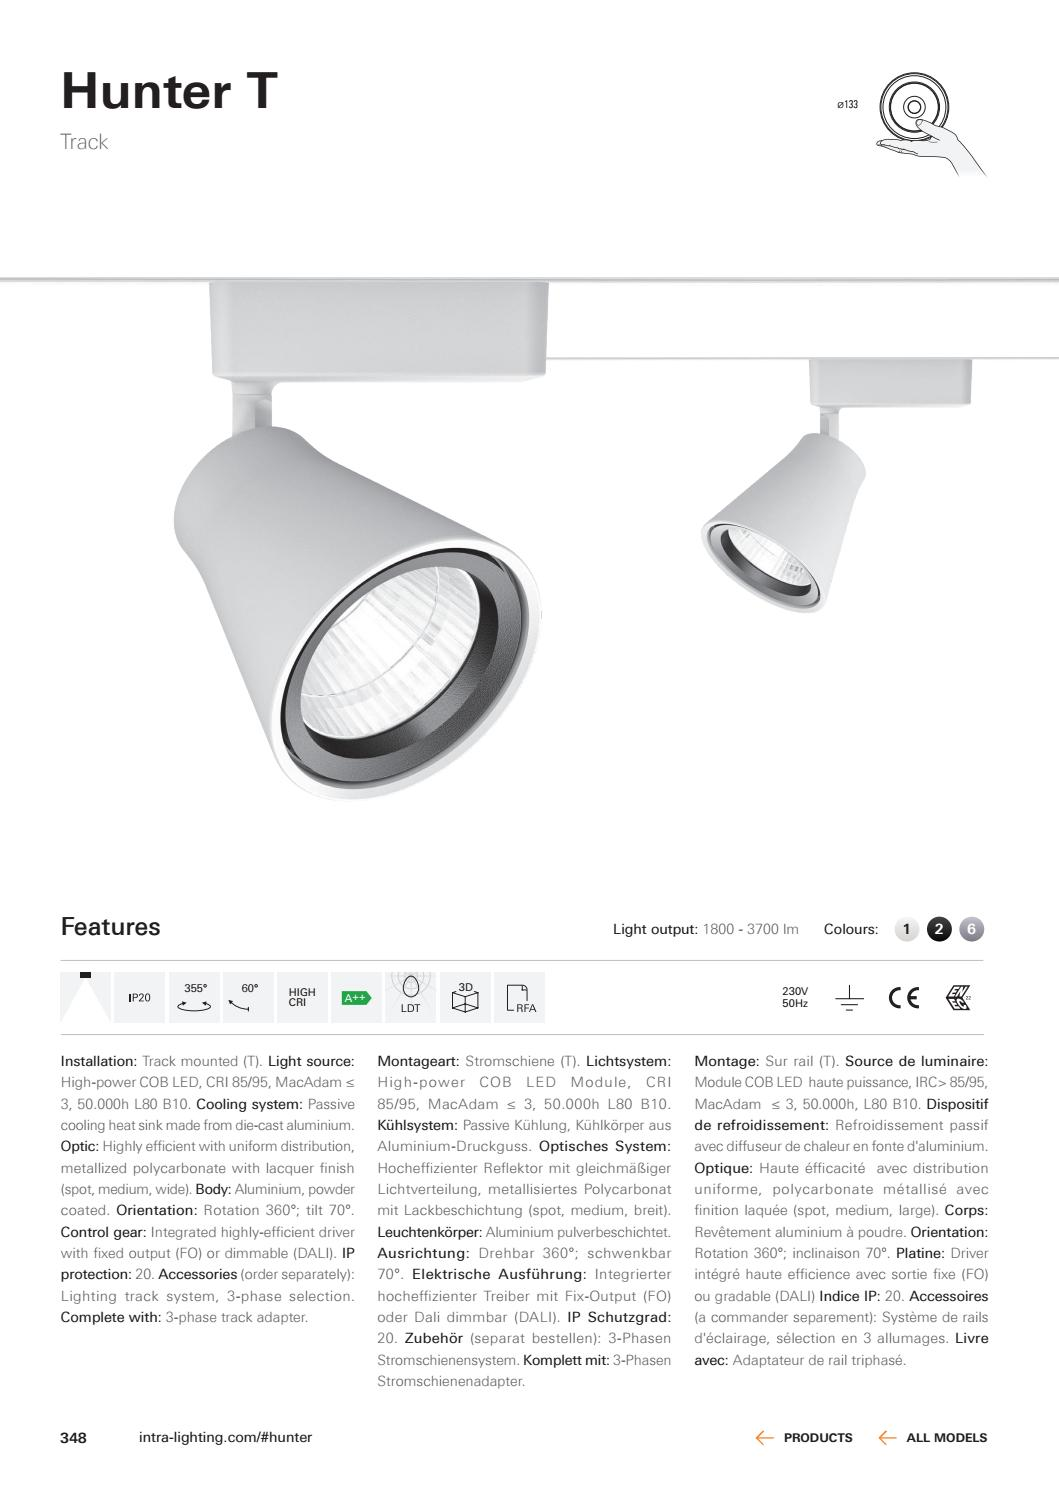 Boite À Cables Ikea intra lighting 30 (lk350-694)kuu stuudio - issuu